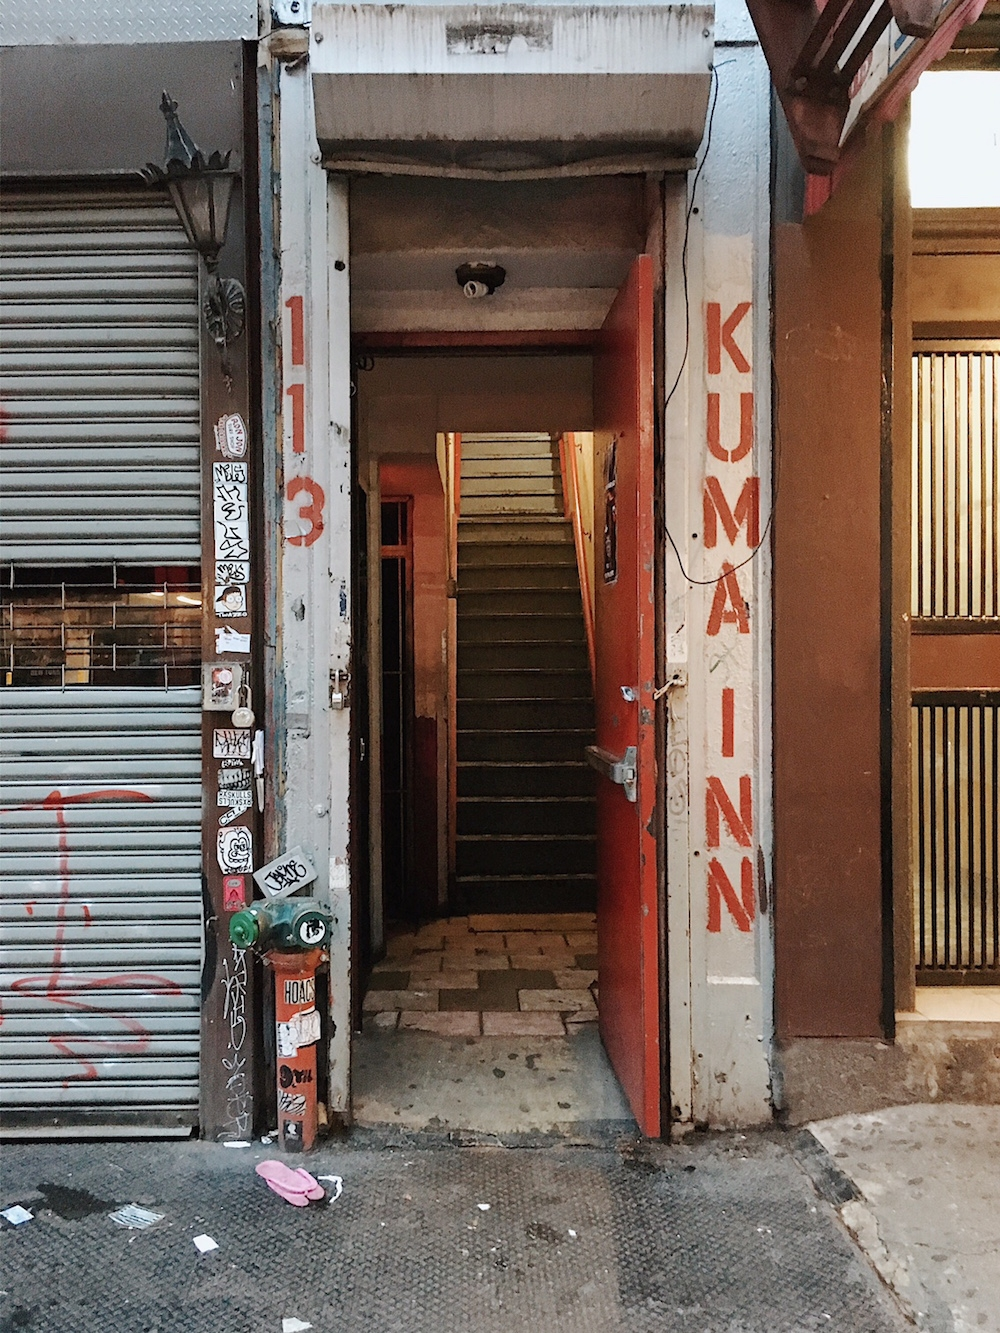 kuma inn lower east side new york secret restaurant ellie seymour